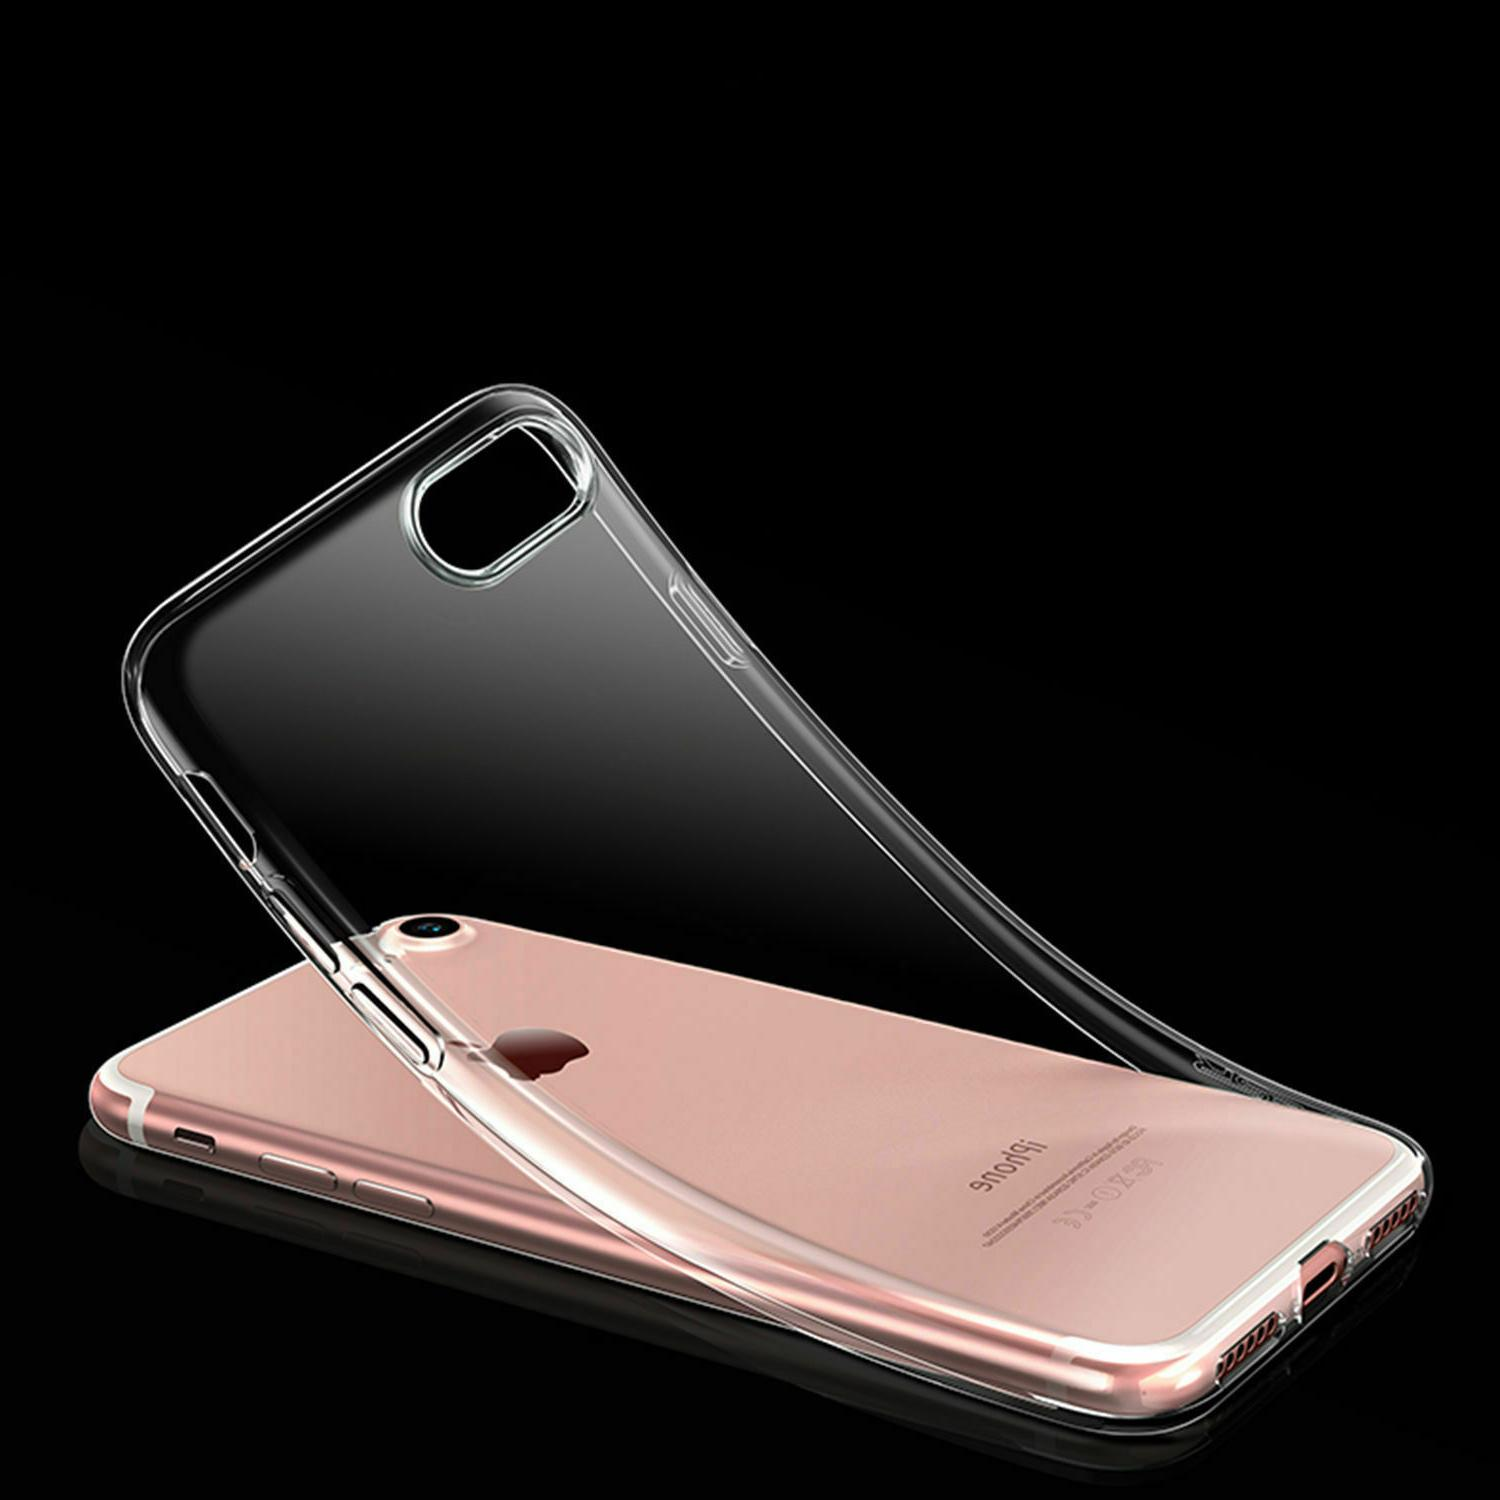 Phone Case Silicone Clear Slim for iPhone Plus XR